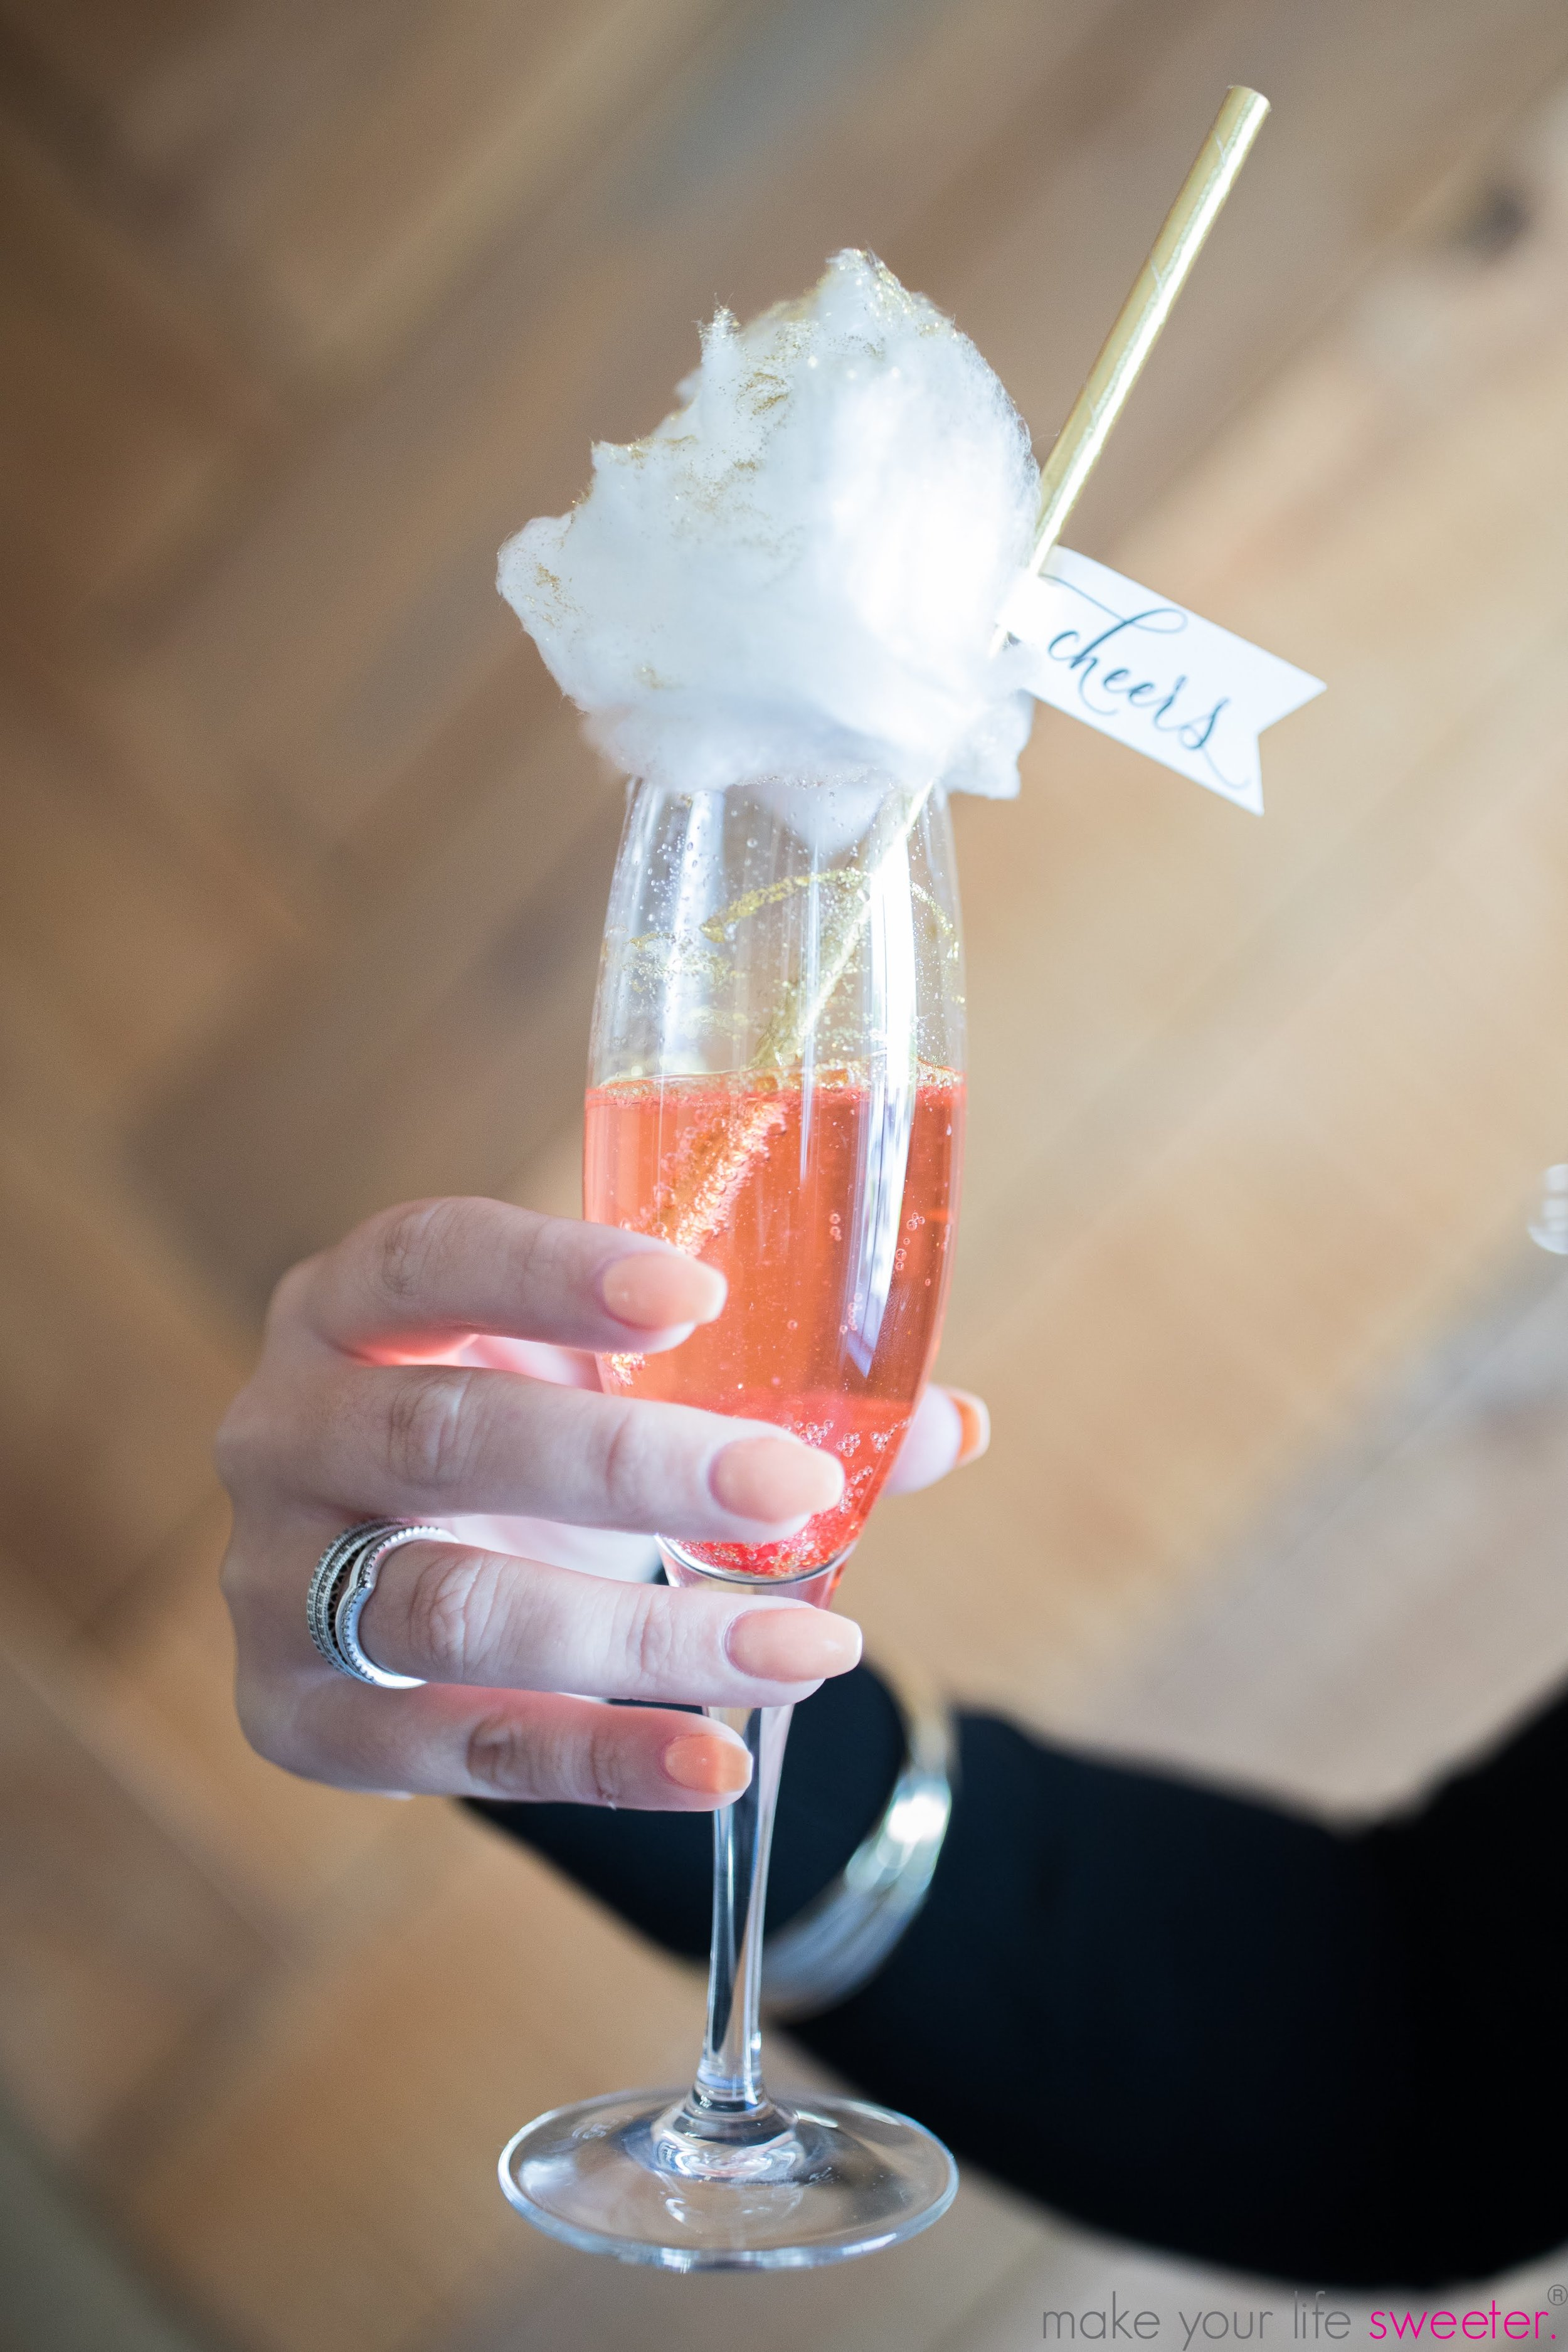 Make Your Life Sweeter Events: The Knot Annapolis - Sugaire Organic Cotton Candy